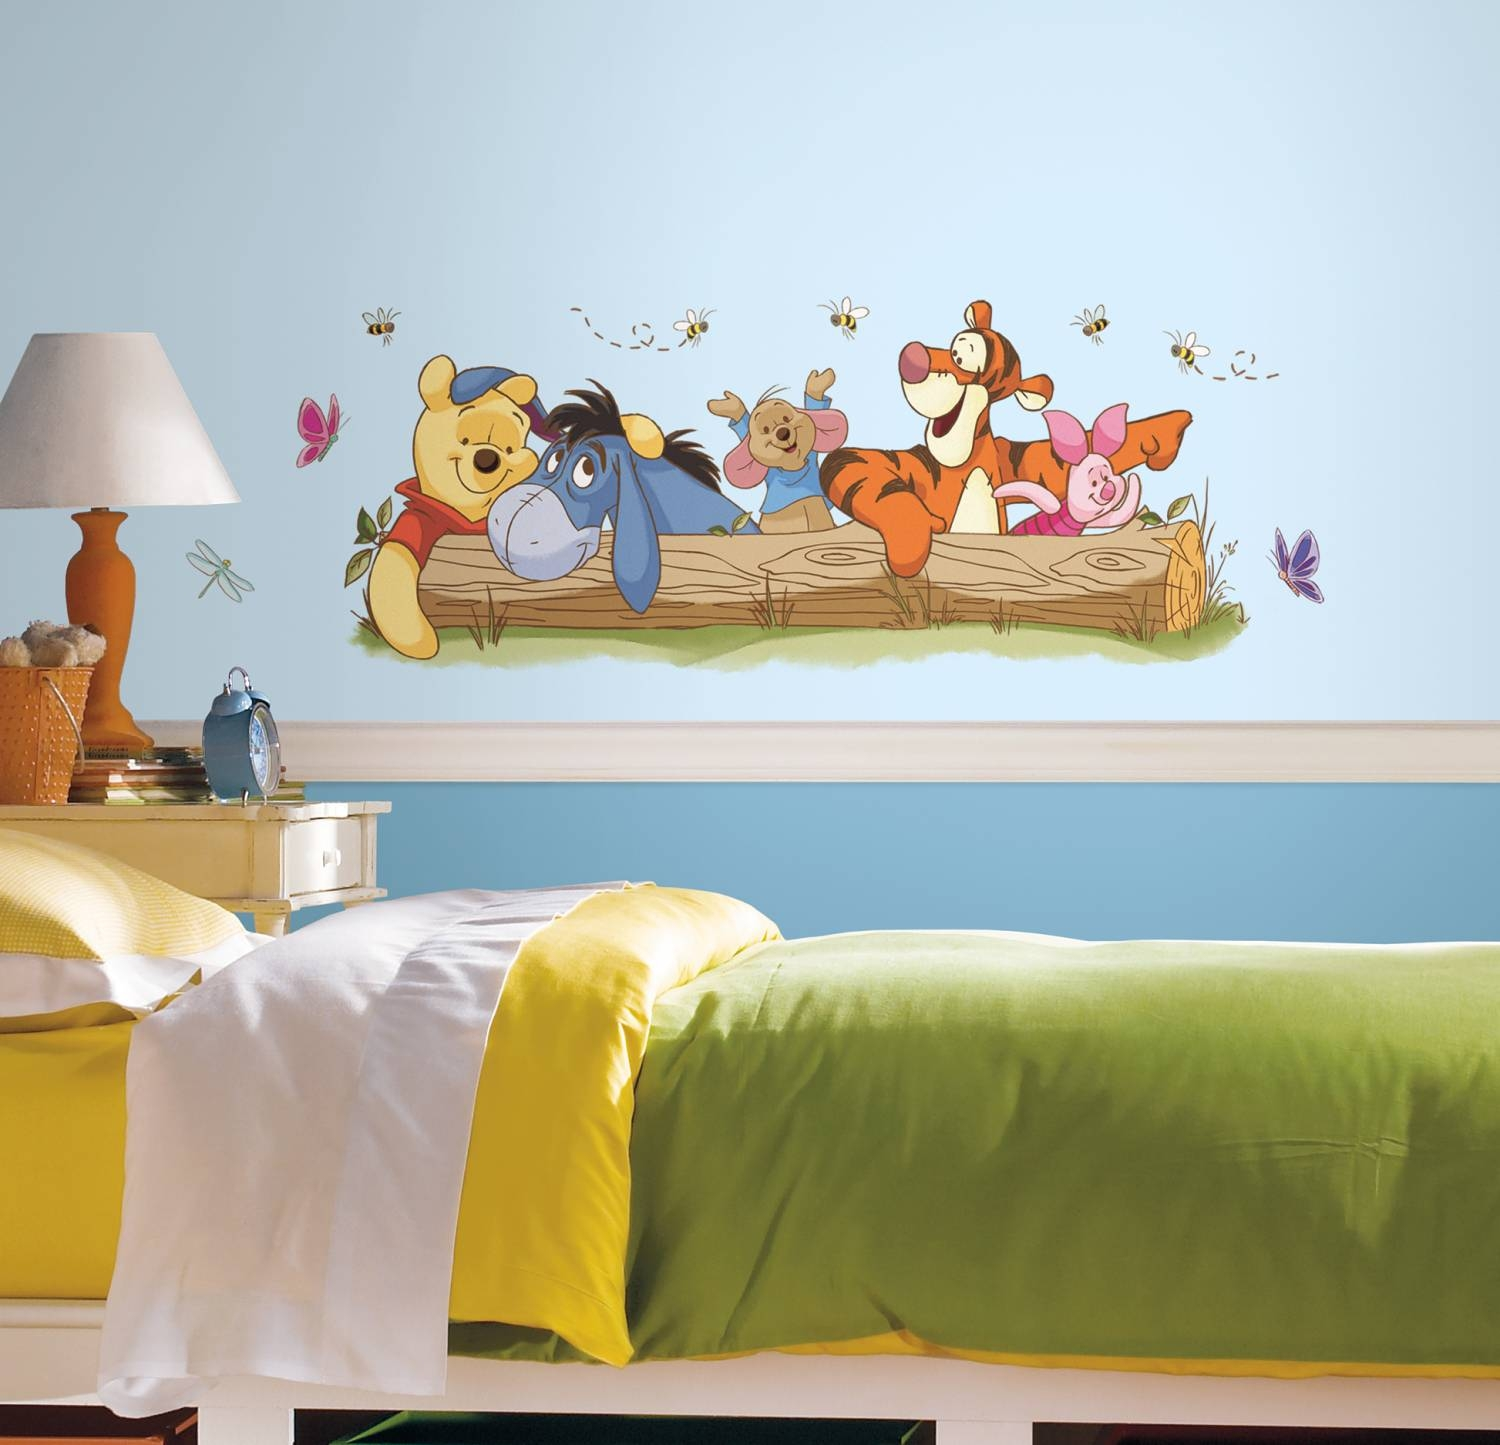 Rmk2553Gm Winnie The Pooh – Outdoor Fun Giant Wall Sticker Pertaining To Most Current Winnie The Pooh Wall Decor (View 11 of 20)